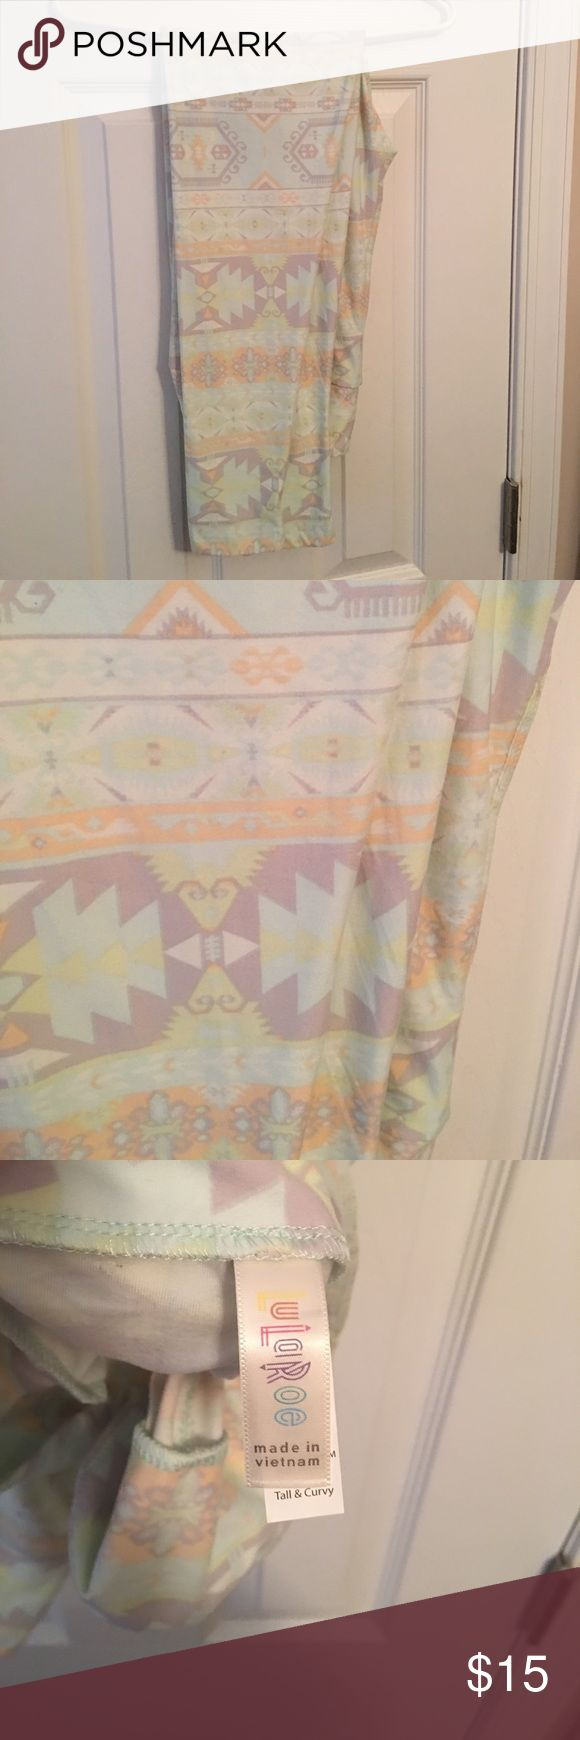 LulaRoe Tall & Curvy - Aztec print leggings Iike NEW - only tried on, I just never wore - beautiful spring/summer pattern - peach, mint, lavender, cream - PRICE FIRM SINCE LIKE NEW LuLaRoe Pants Leggings